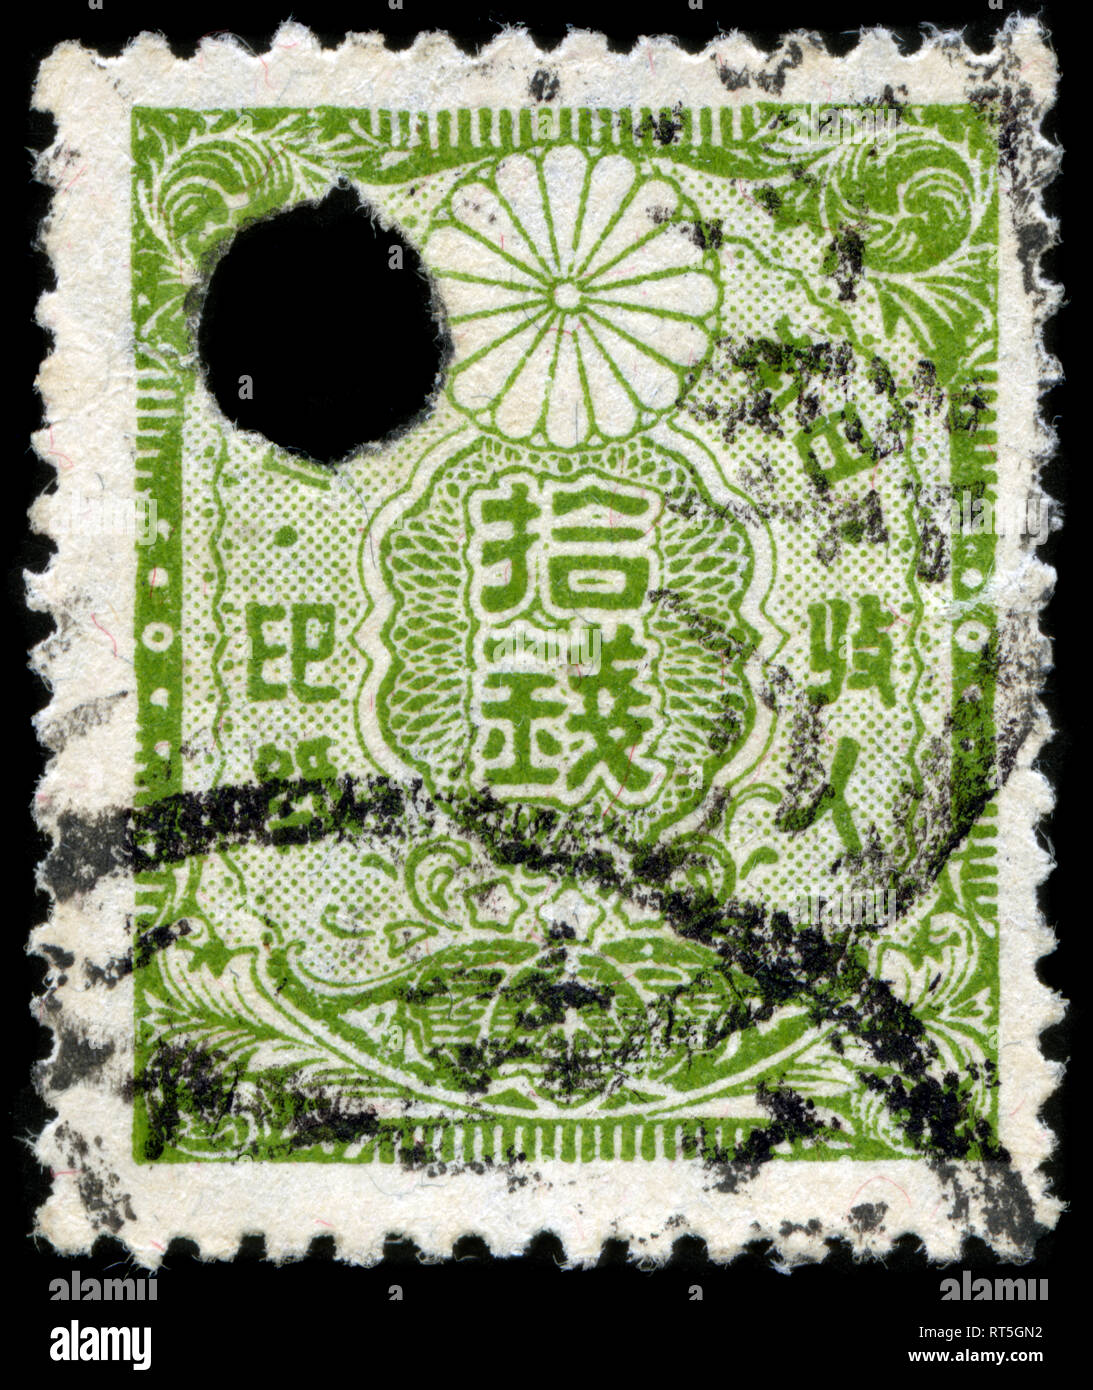 Revenue stamp from Japan, undated - Stock Image